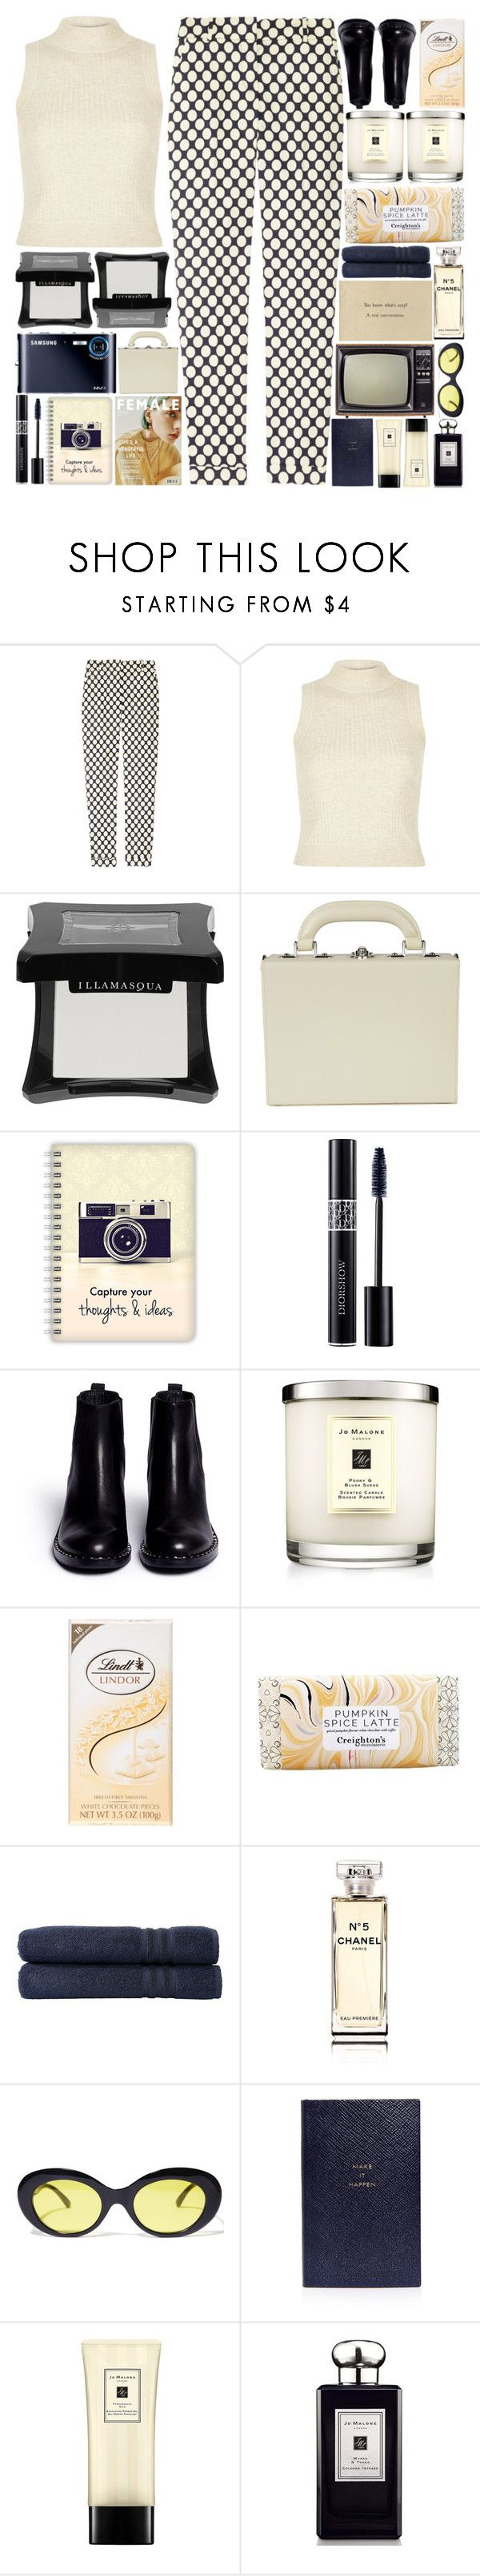 """6328"" by tiffanyelinor ❤ liked on Polyvore featuring J.Crew, River Island, Illamasqua, Bertoni, Christian Dior, Ash, Jo Malone, Lindt, Linum Home Textiles and Chanel"